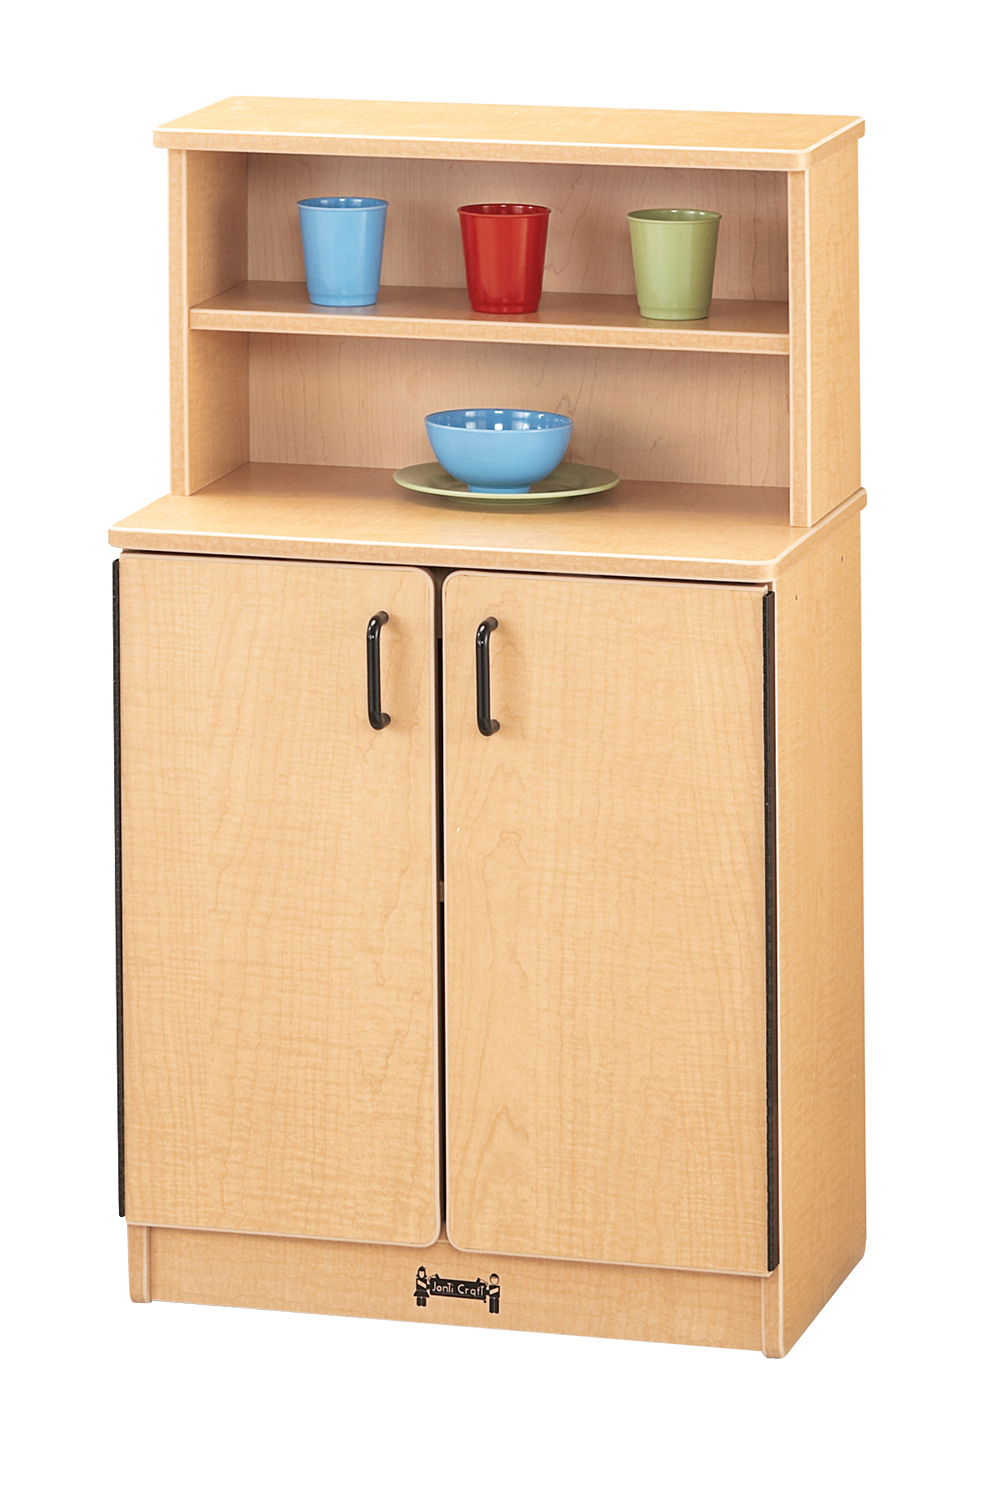 Offex School Children Pretend Play Kitchen Cupboard